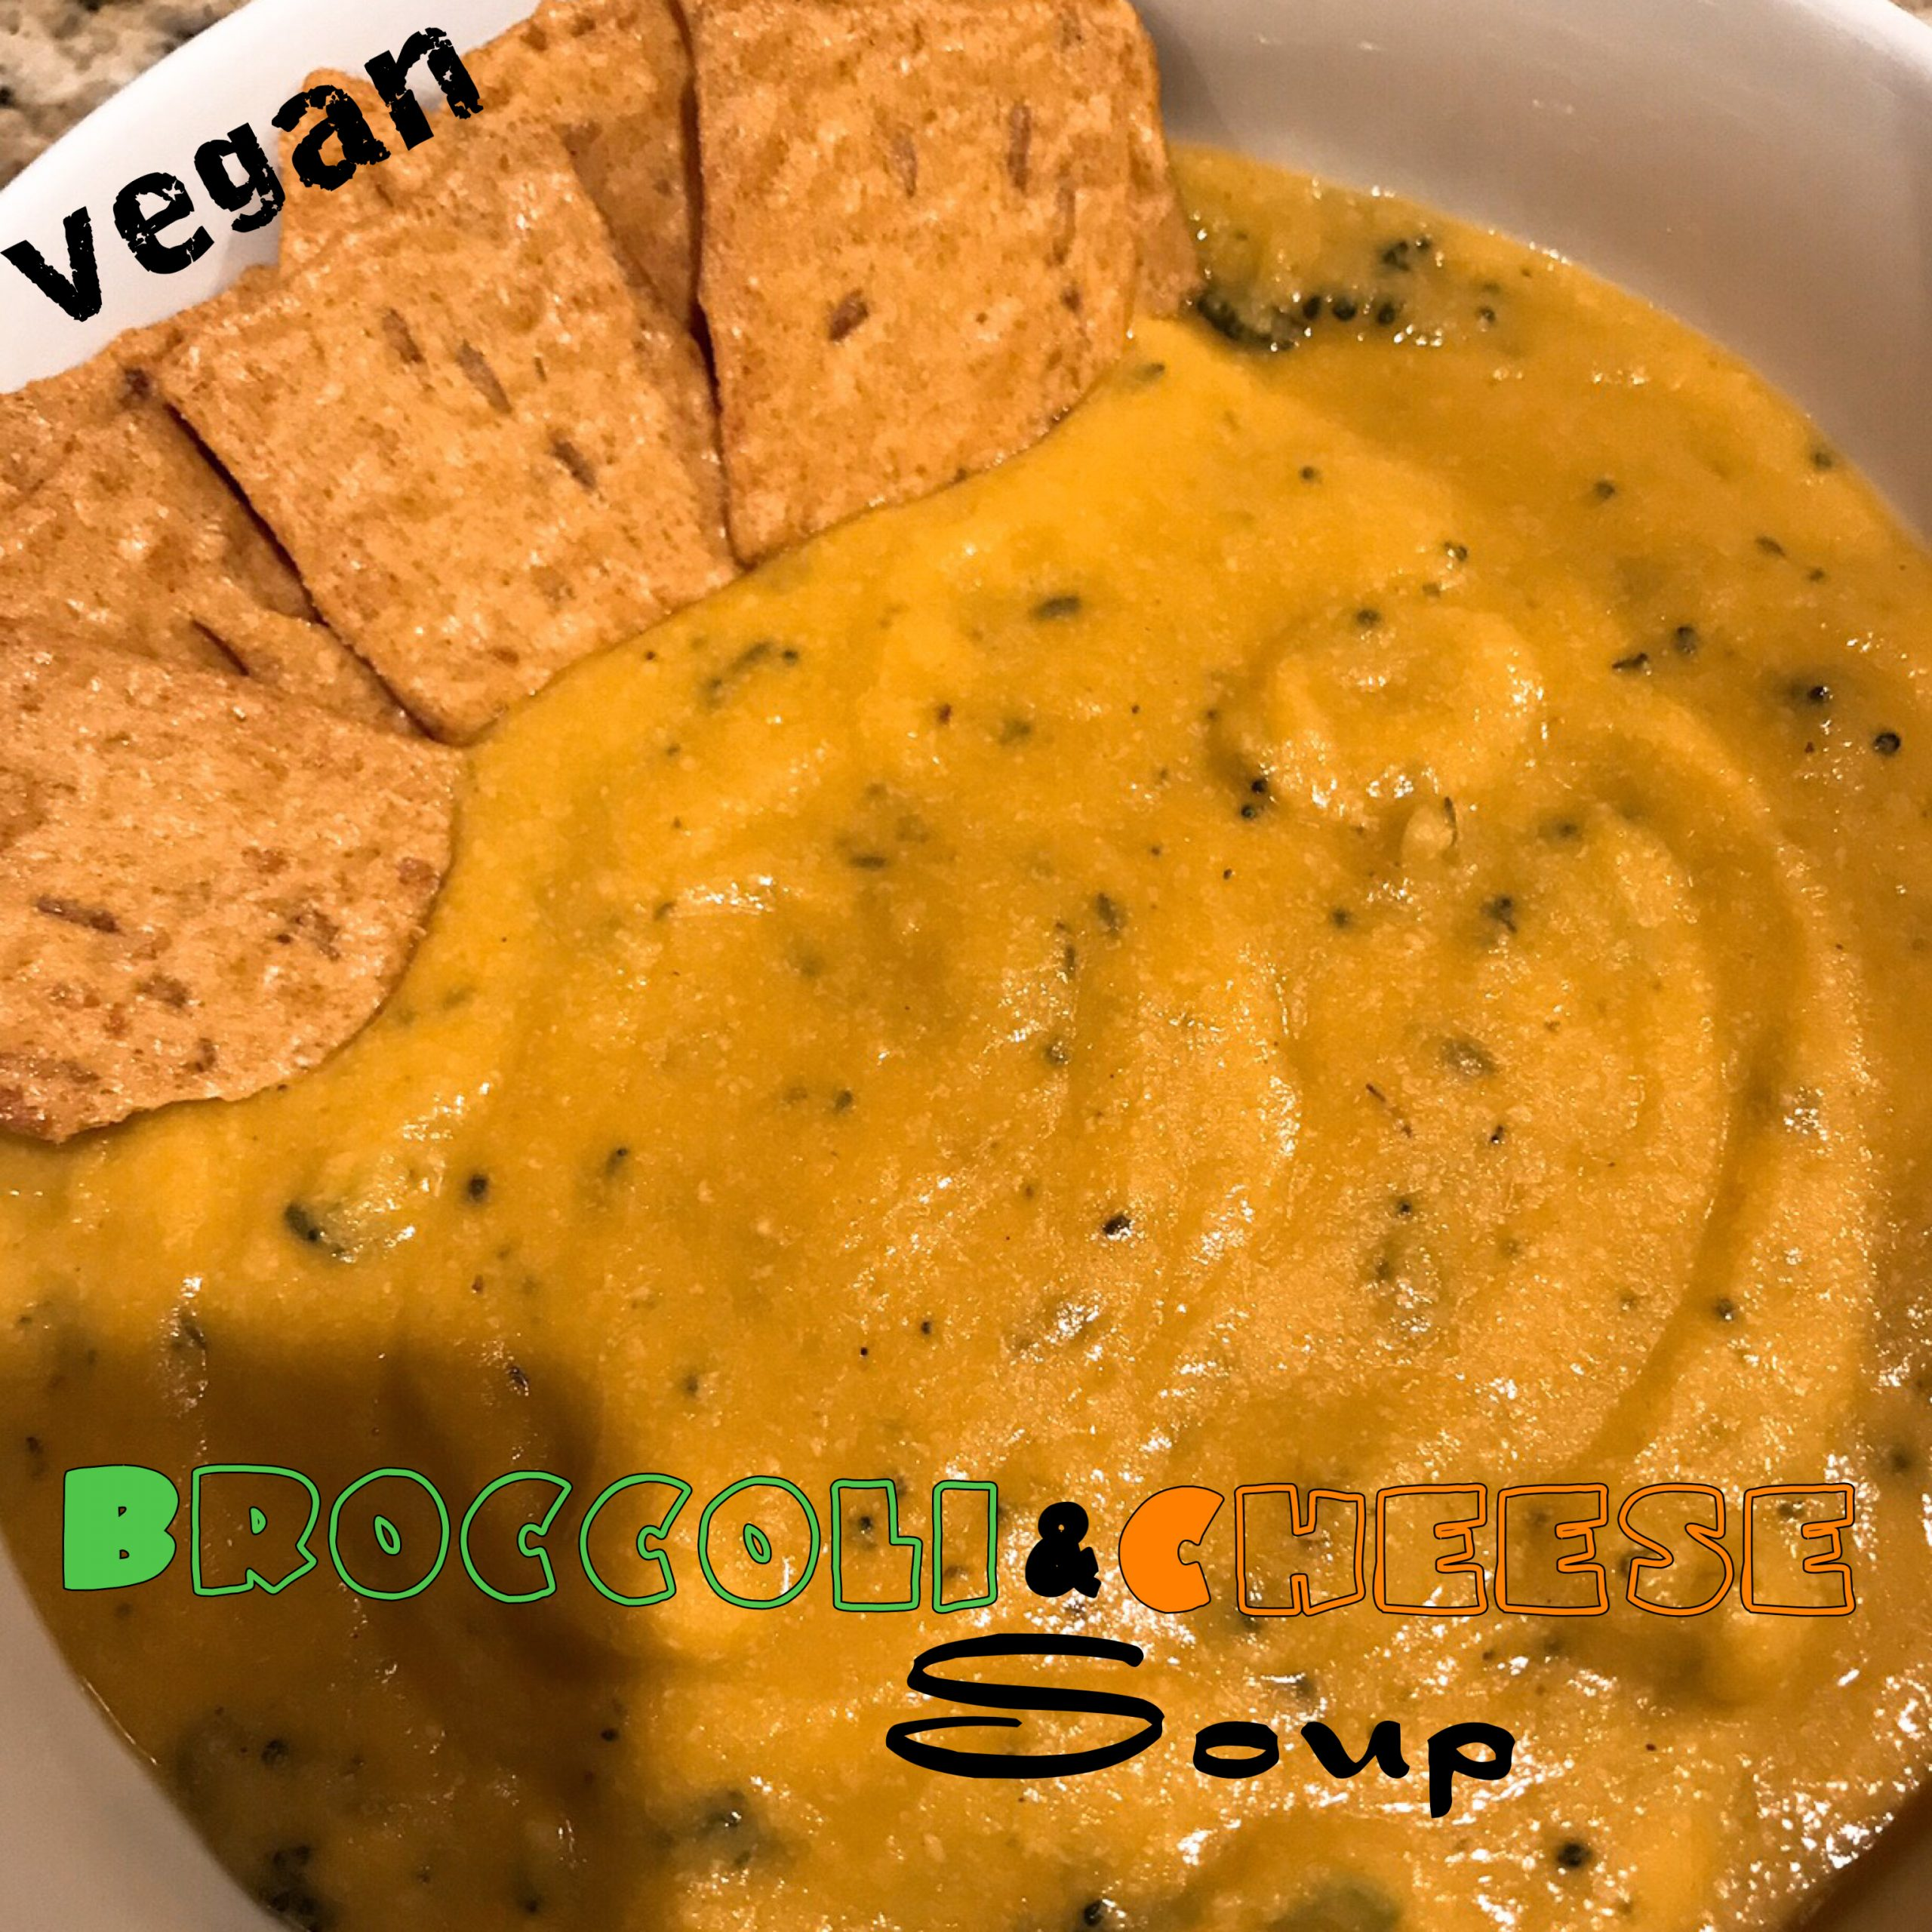 Vegan Broccoli & Cheese Soup